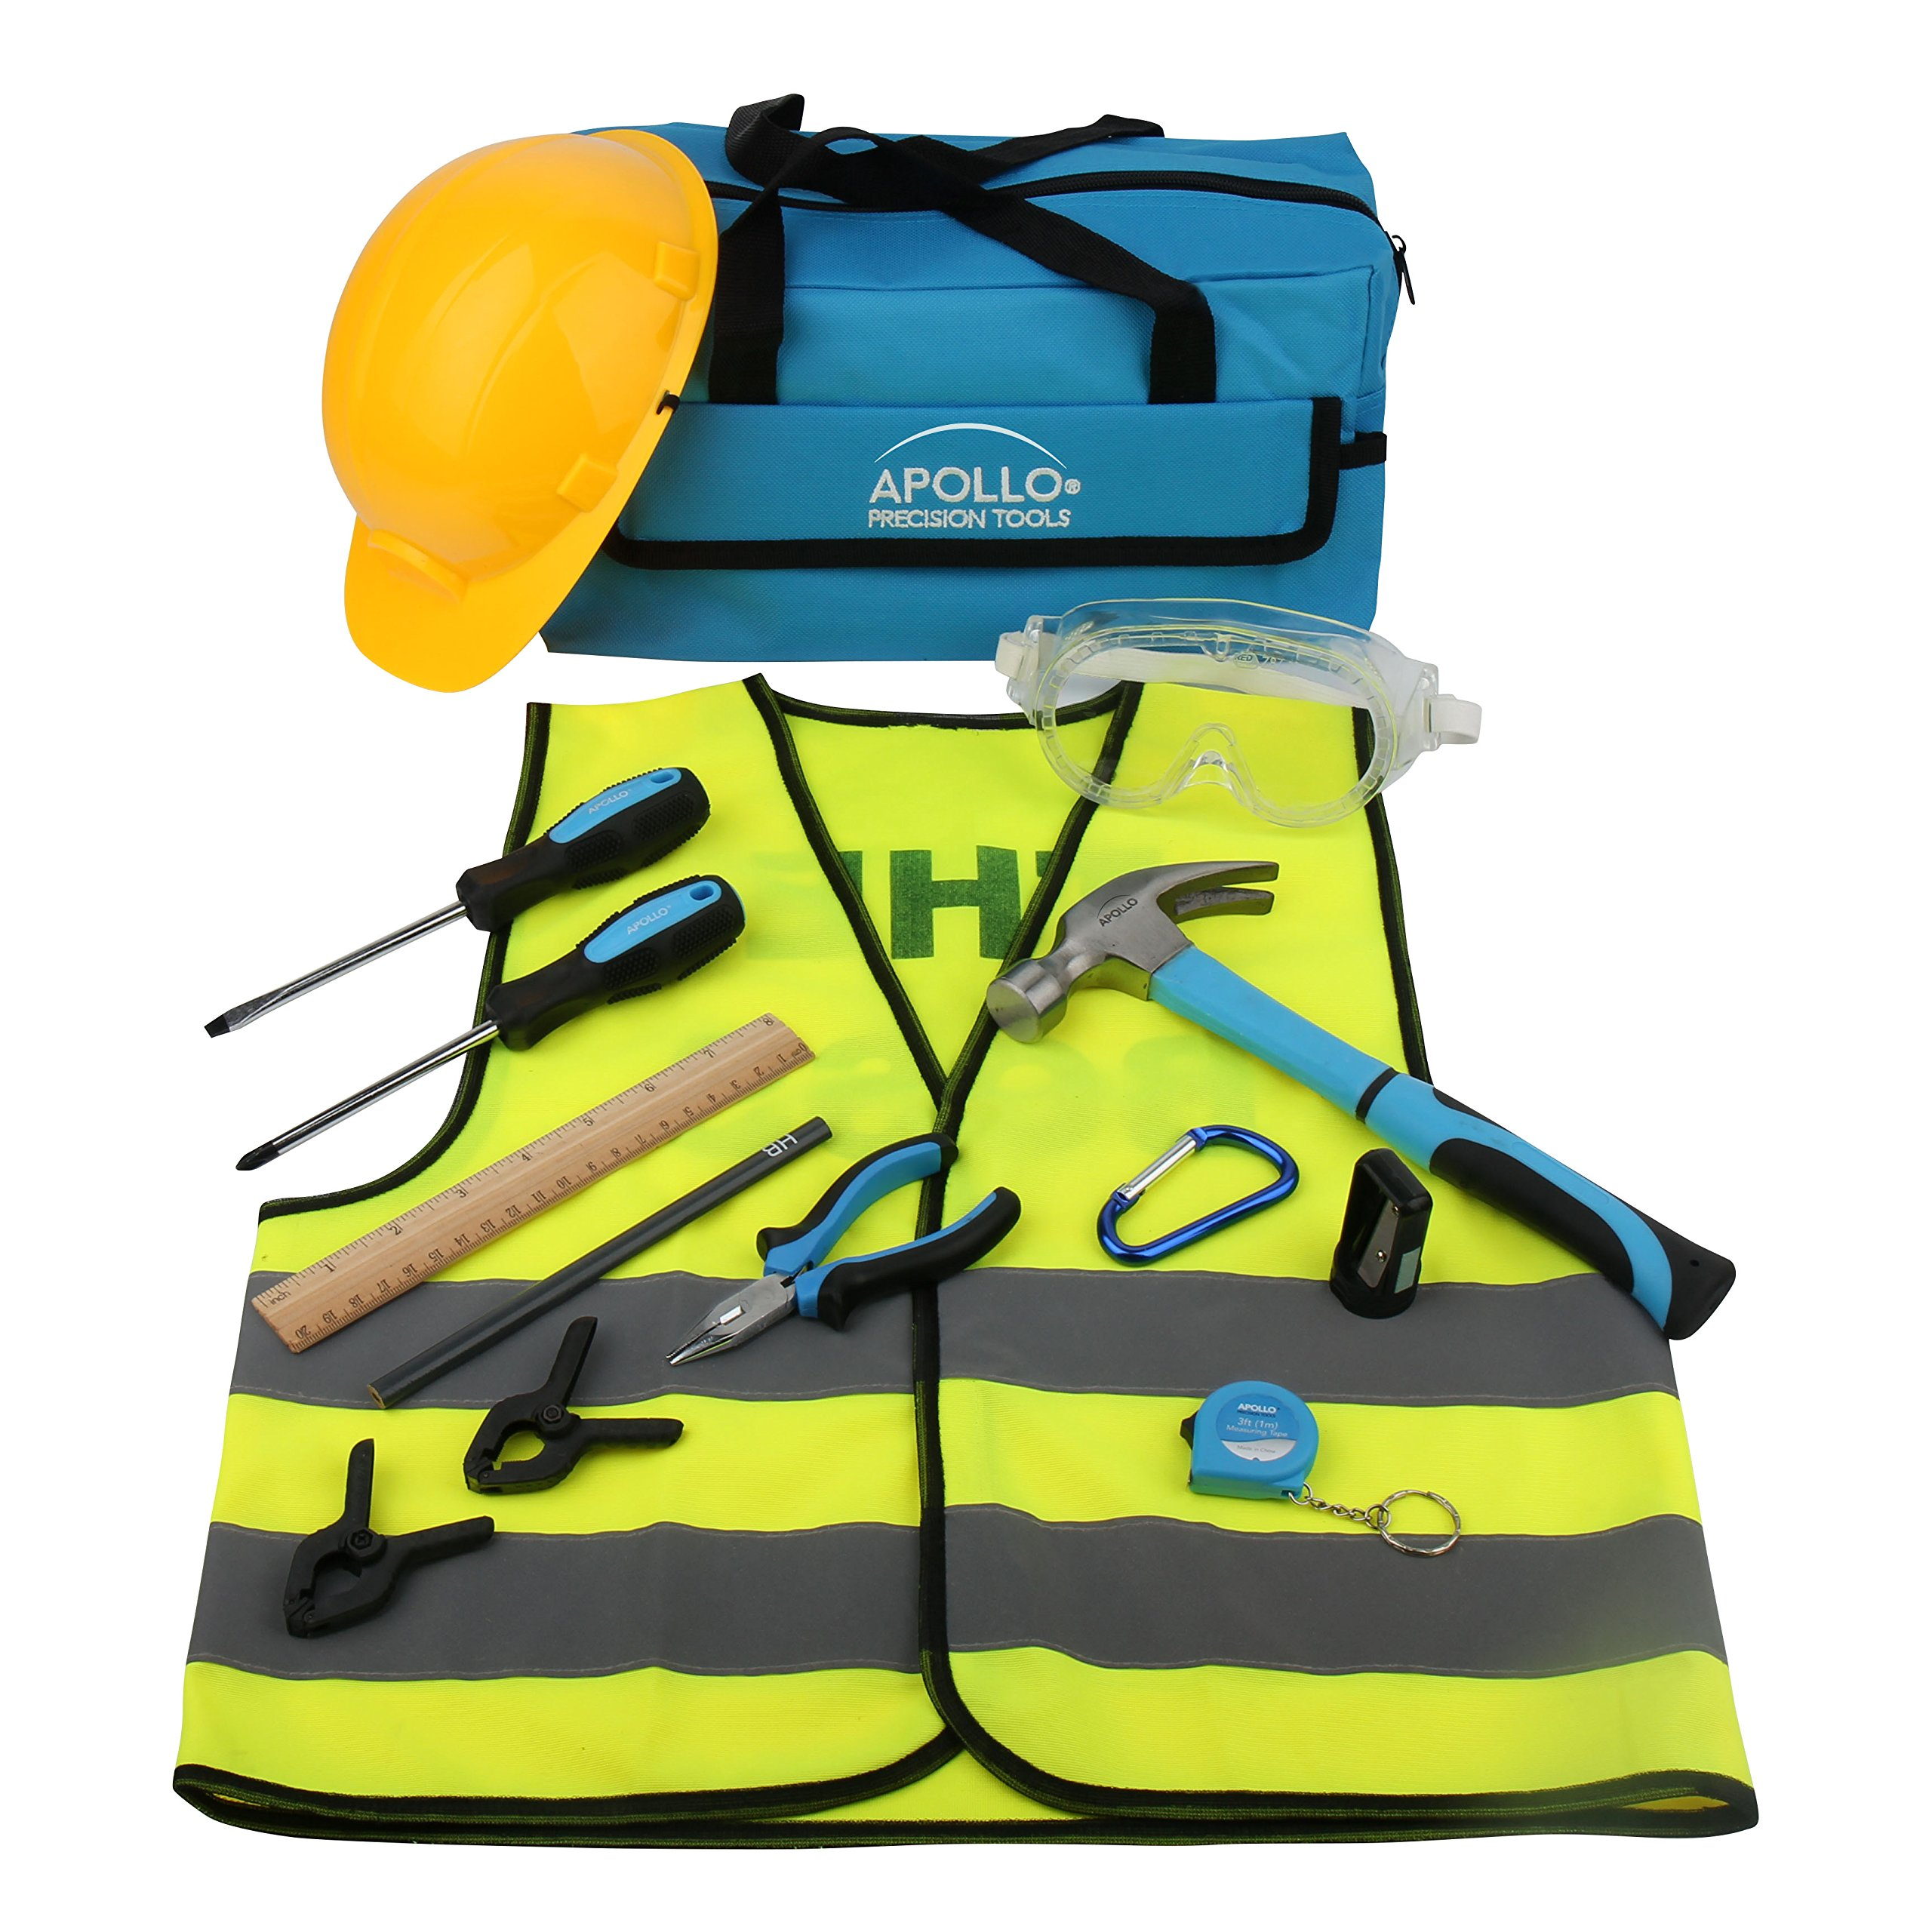 Apollo Tools DT4936 14 Piece Children's First Tool Kit with Real Hand Tools and Safety Goggles, Play-Work Hat and Reflecting Vest - All in a Convenient Storage Bag